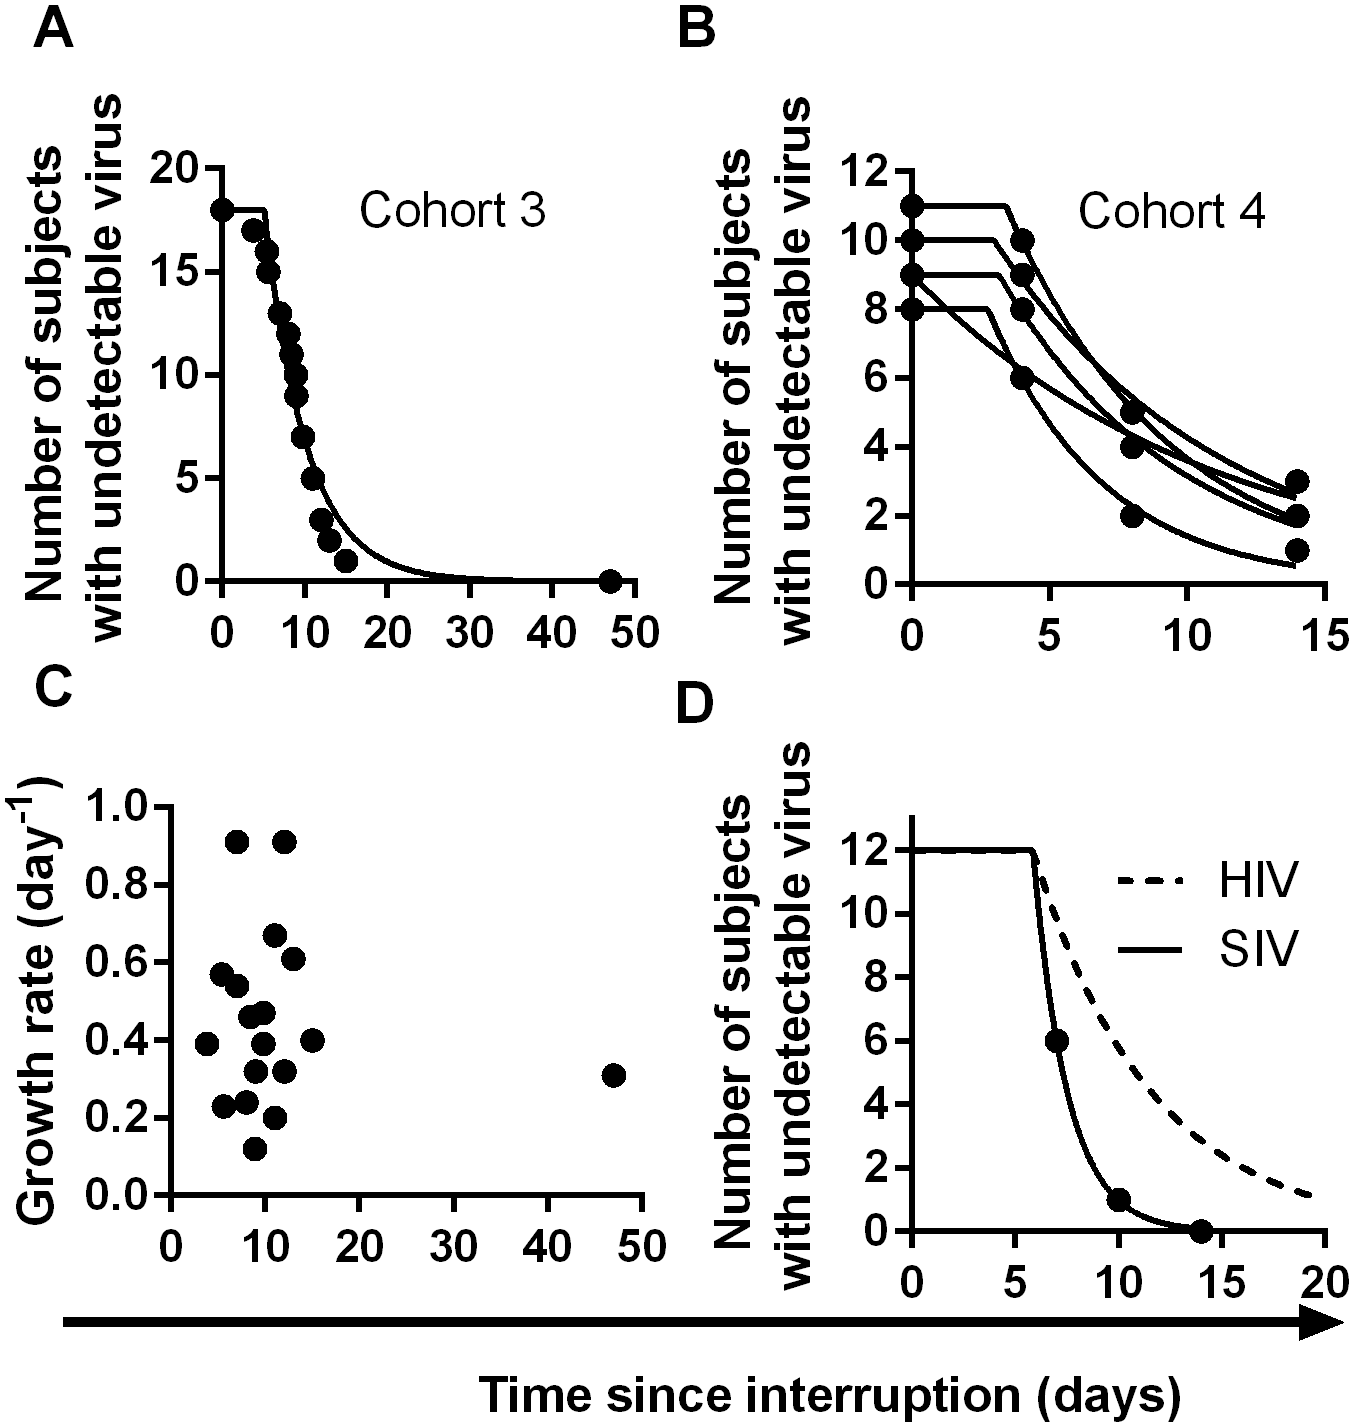 Time-to-detection of virus in cohorts 3 and 4.